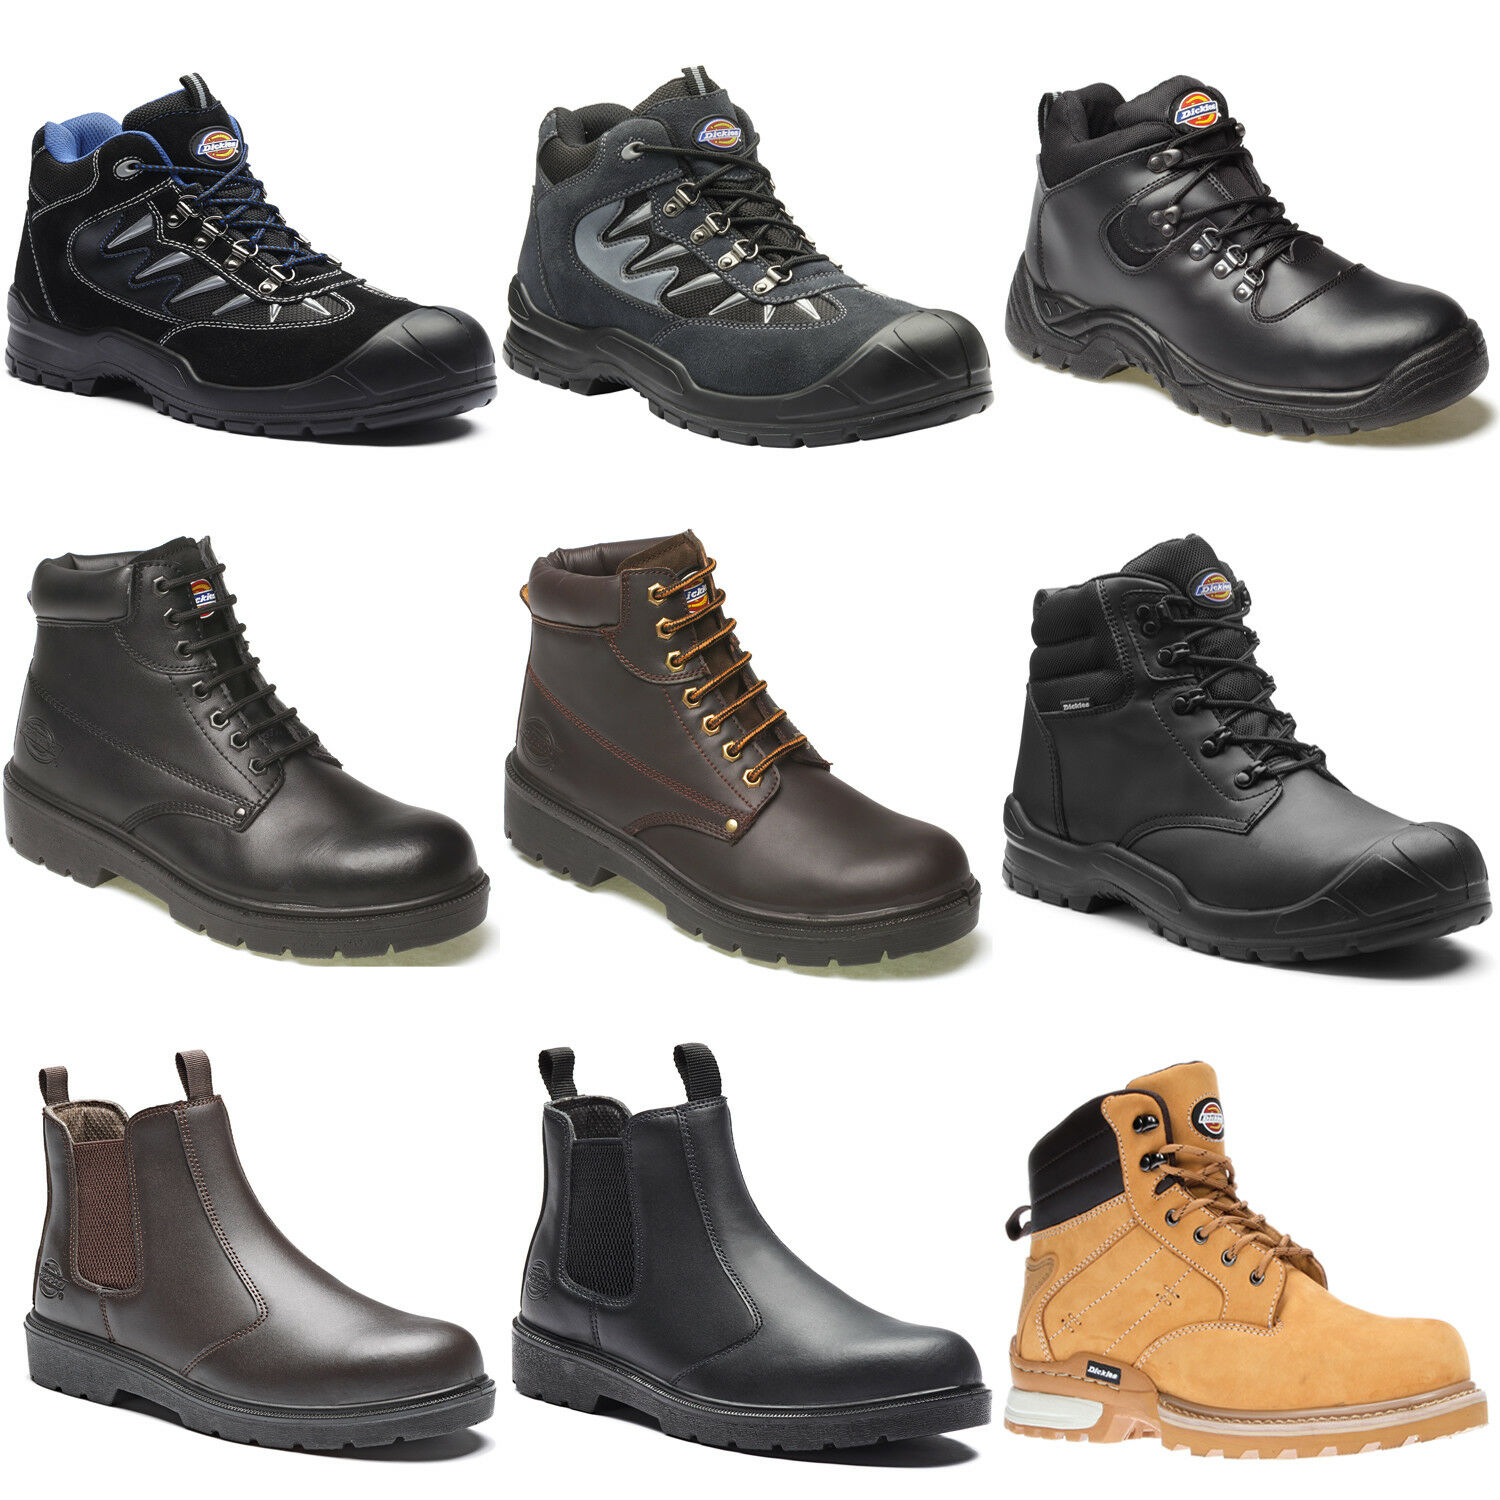 Dickies Safety Safety Dickies Work Boots Shoes Hiker (Various Sizes) Men's Black Brown Tan Grey eb3438